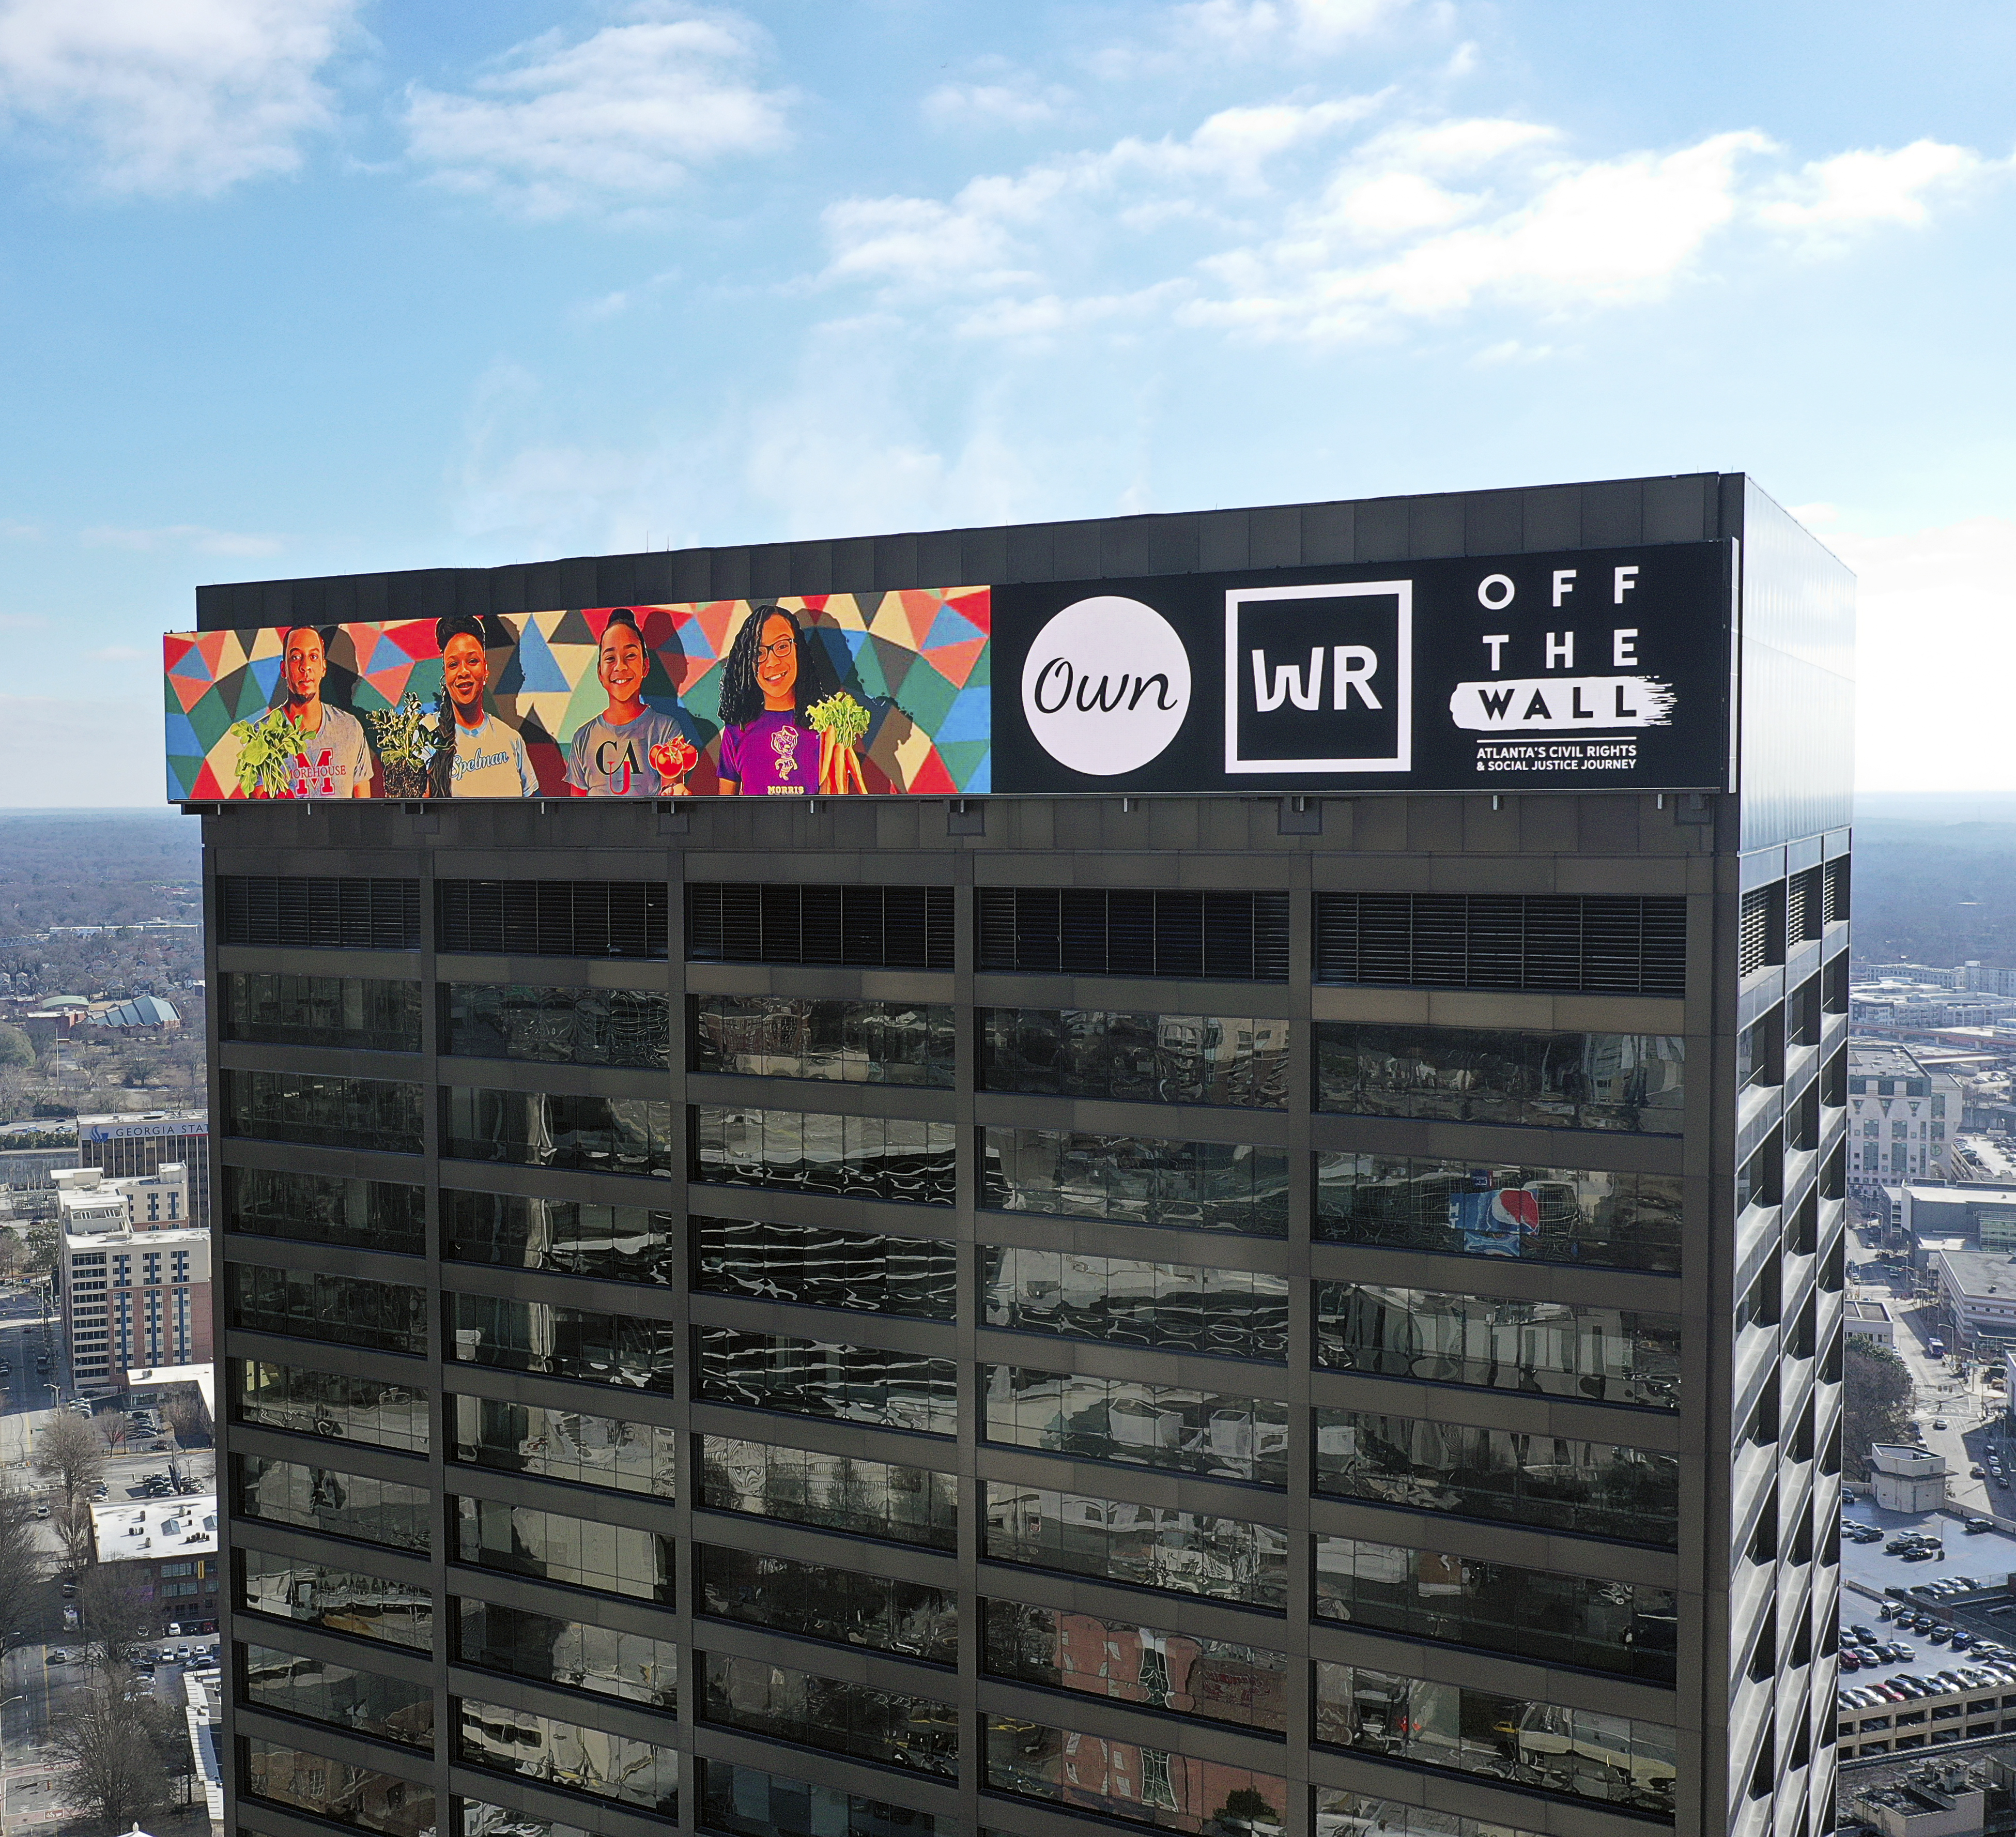 Atlanta's first digital, building-top signage is live. How's that make you feel?